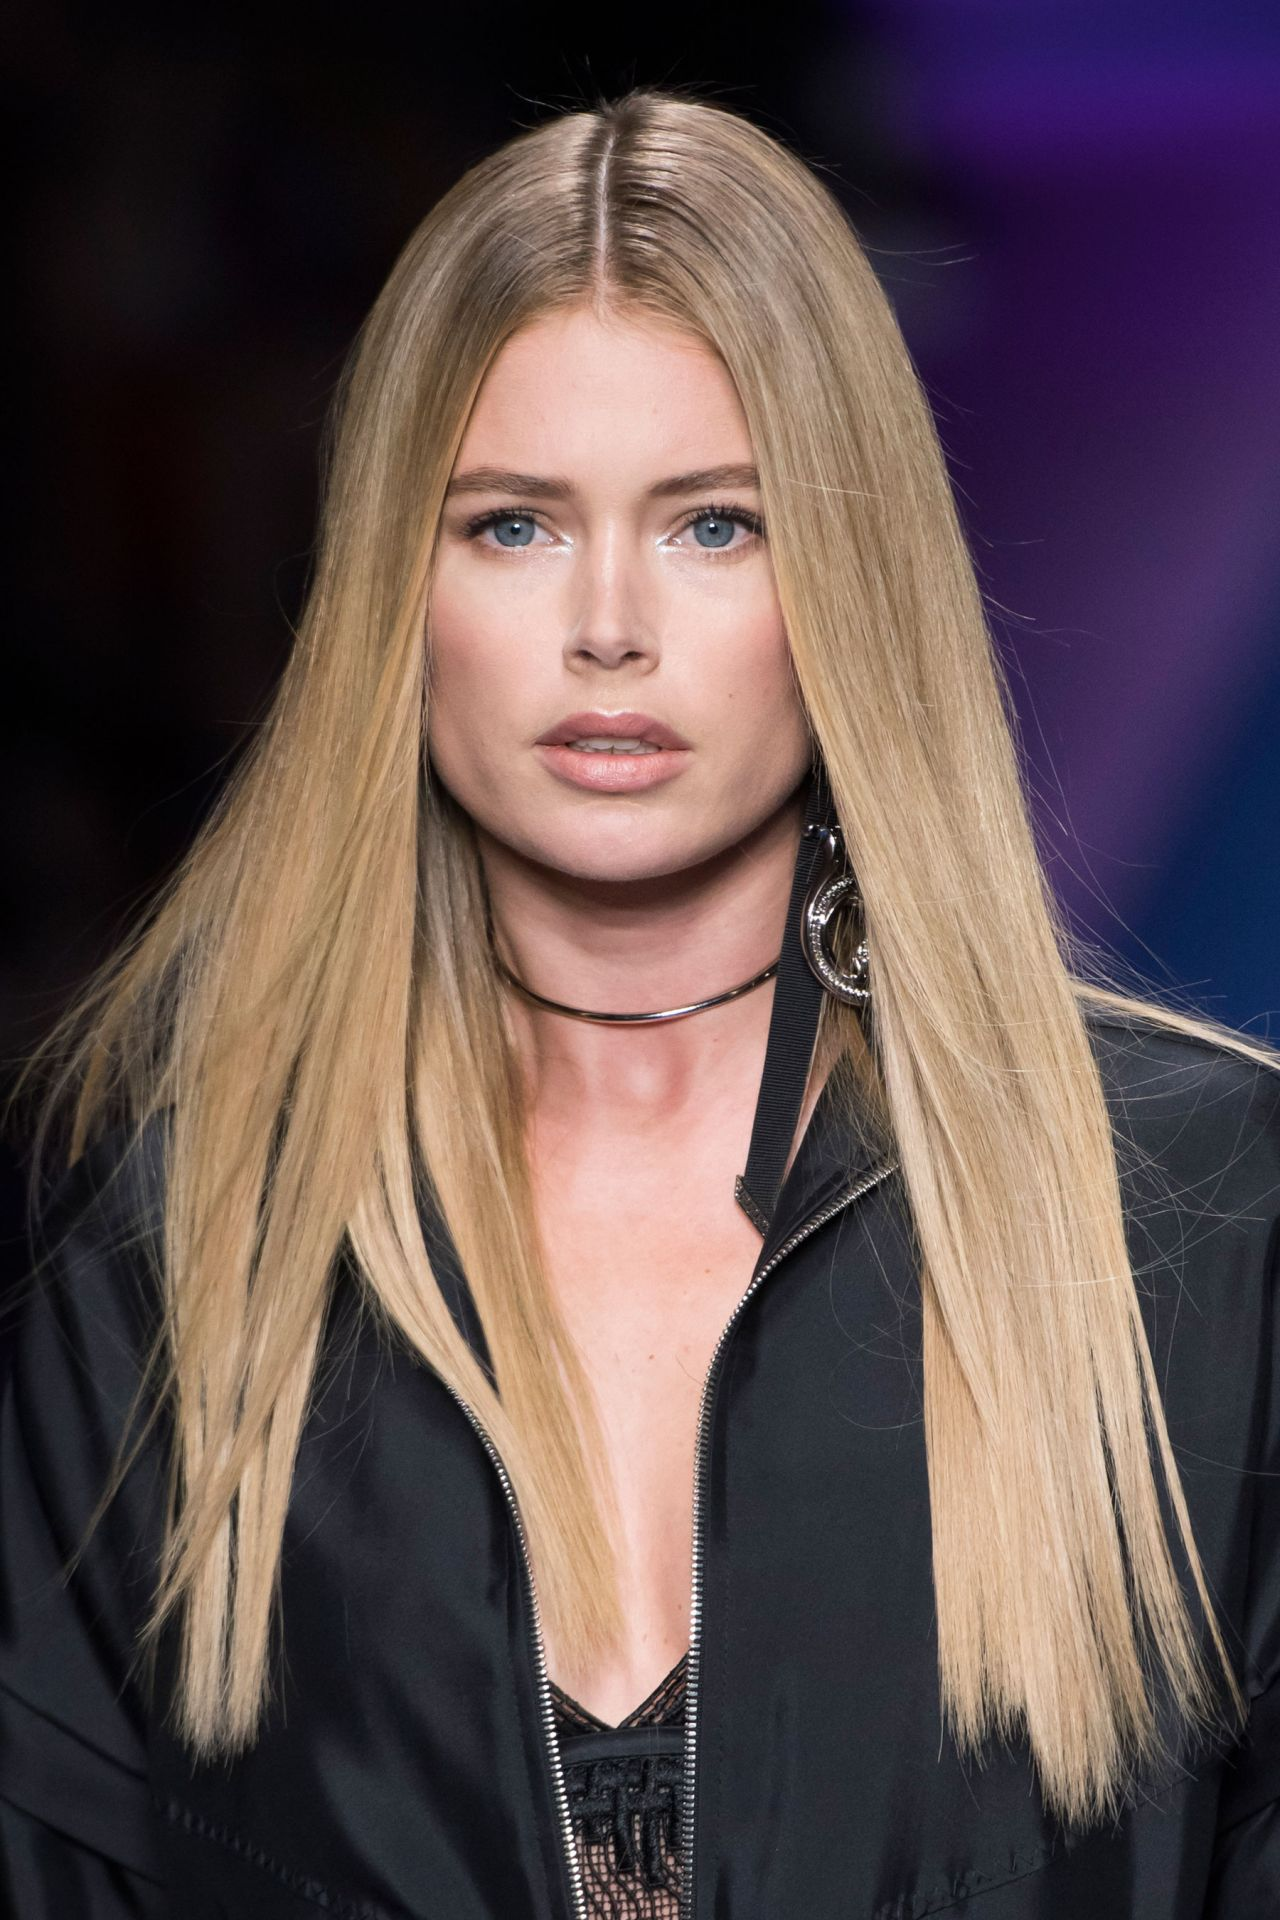 DOUTZEN KROES at CFDA Fashion Awards in New York 06/03